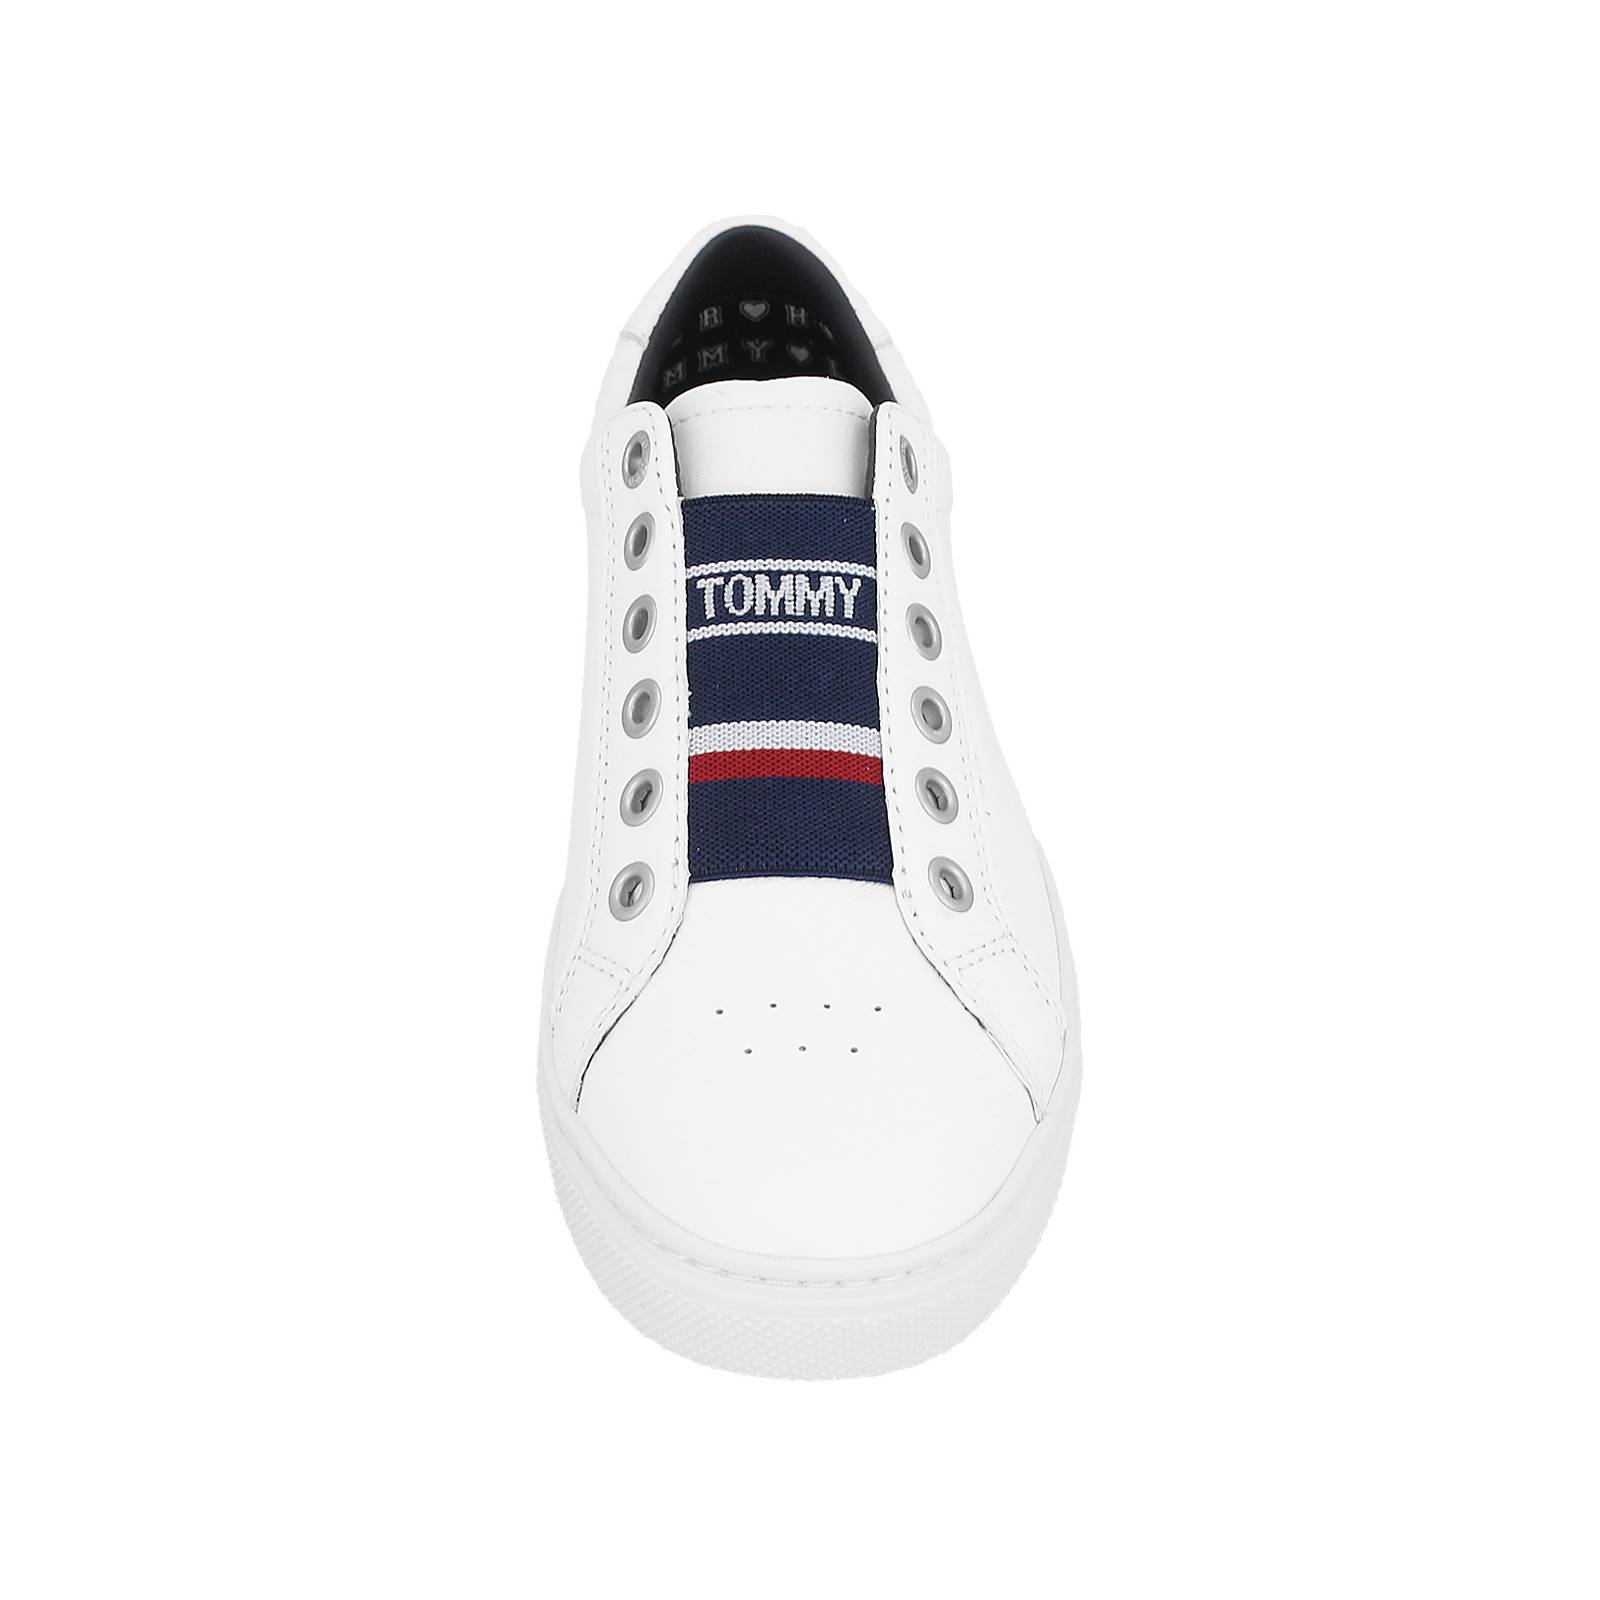 122eb2238 Tommy Elastic City Sneaker - Tommy Hilfiger Women s casual shoes ...